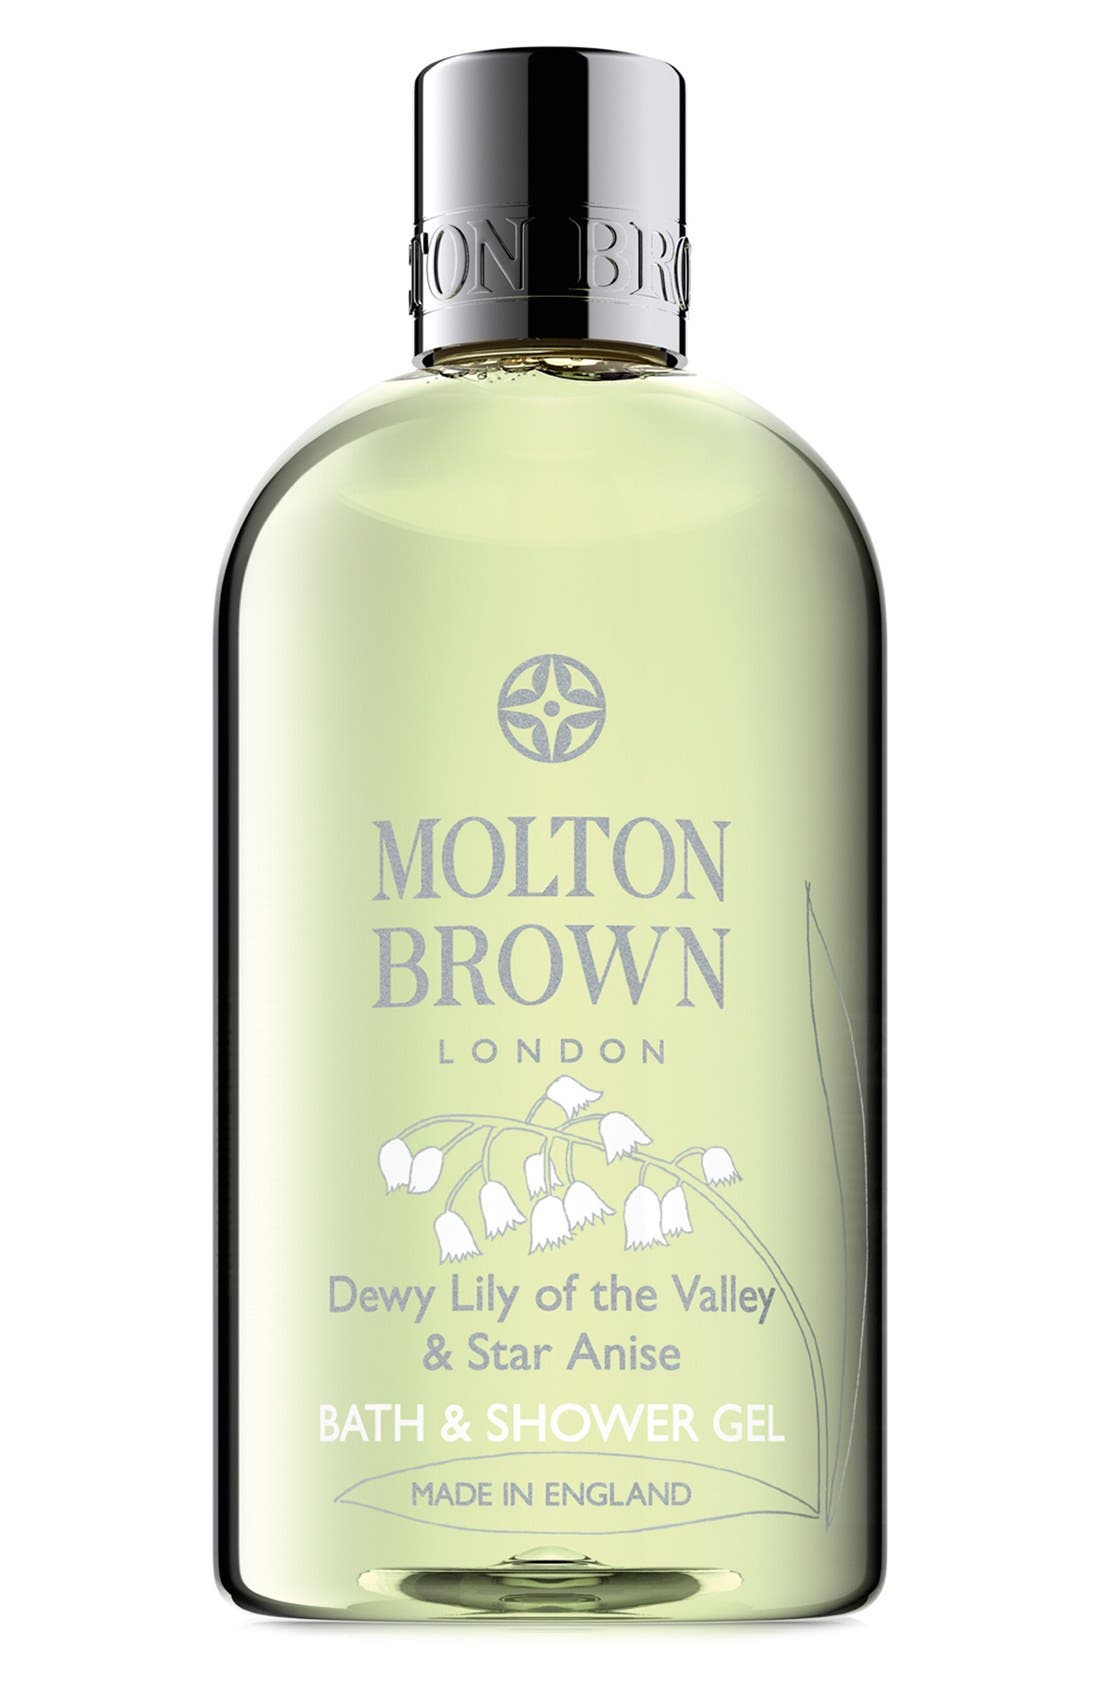 MOLTON BROWN London 'Dewy Lily of the Valley & Star Anise' Bath & Shower Gel